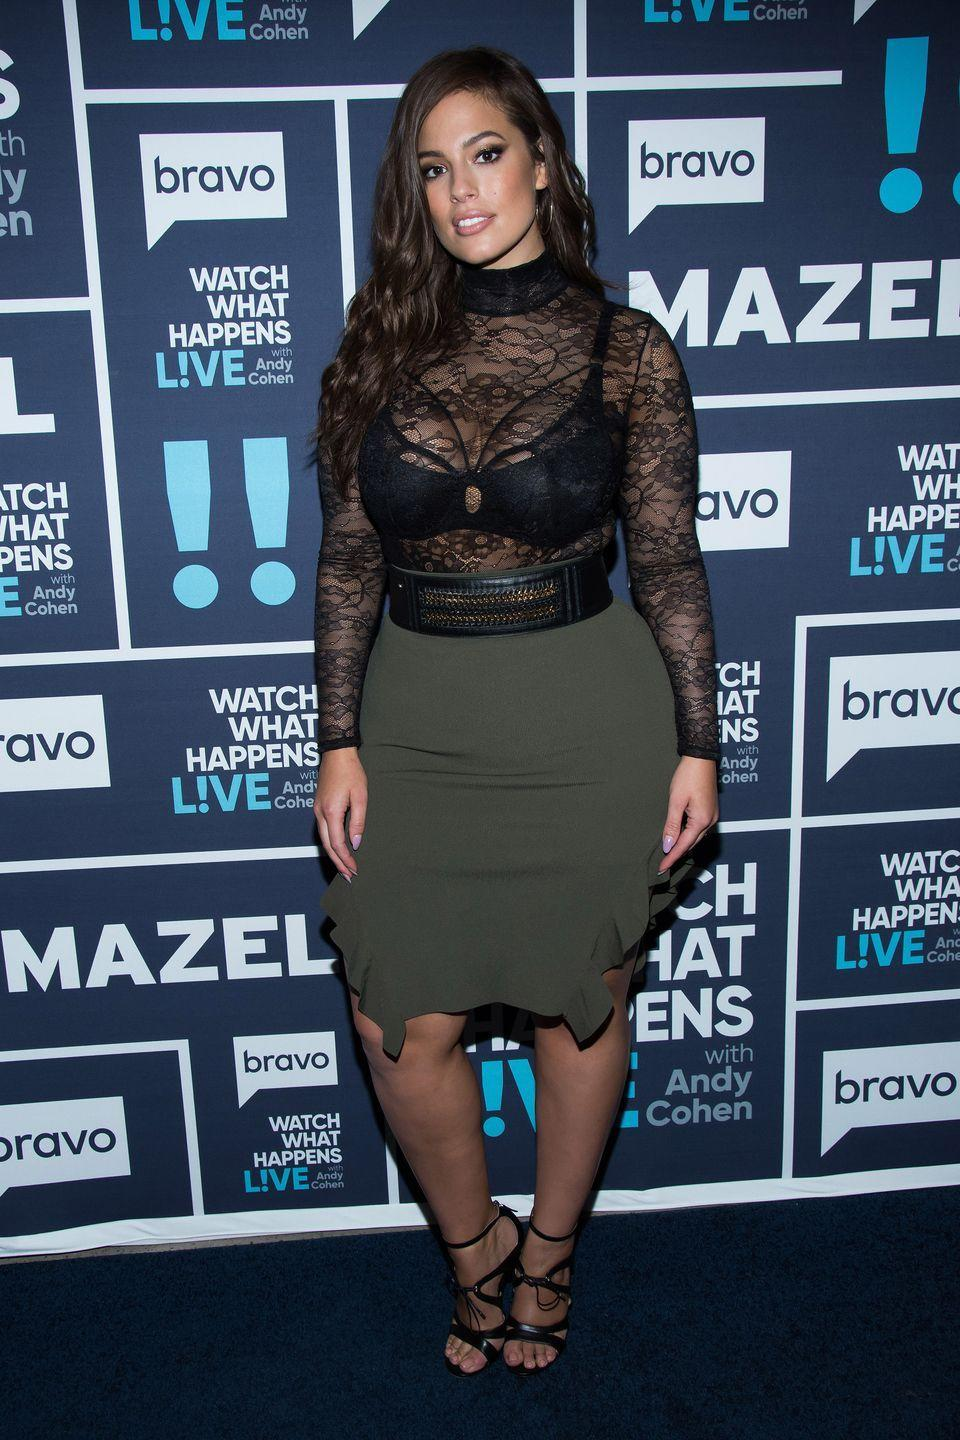 <p>Watch What Happens Live: How to wear a see-through top - just make sure you're wearing a really sexy bra.</p>